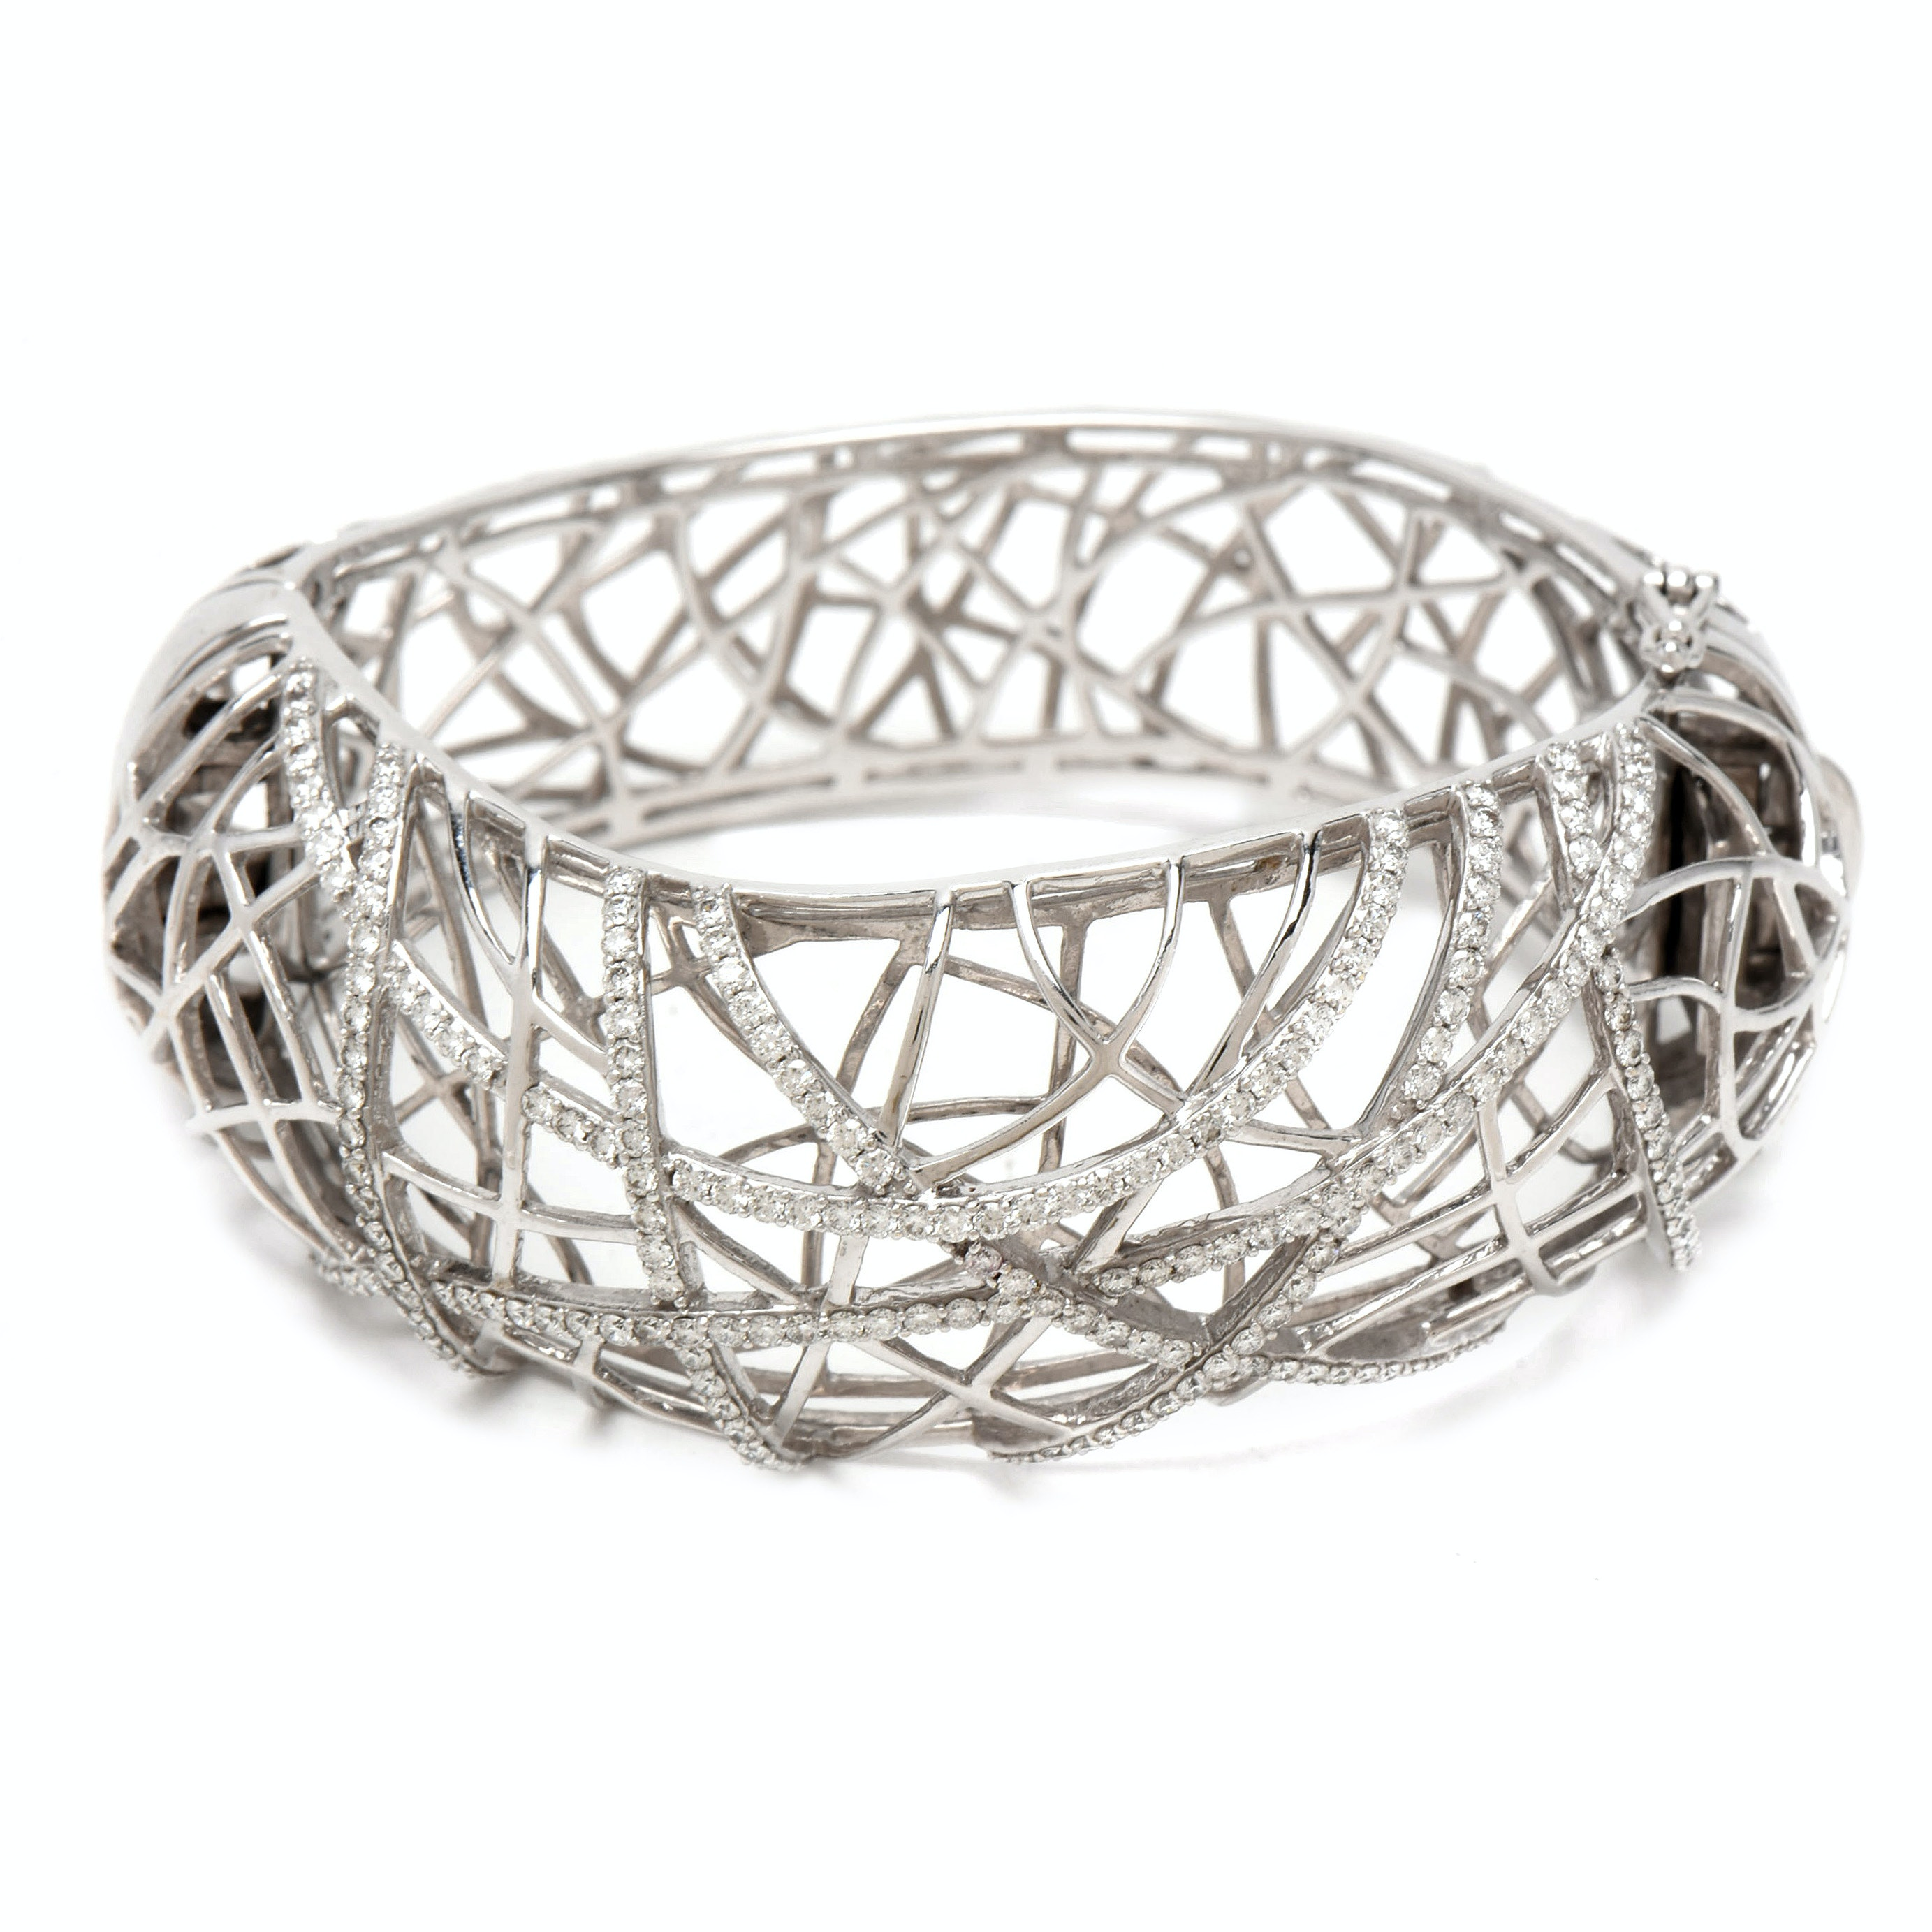 Penny Preville 18K White Gold 2.48 CTW Diamond Cage Bangle Bracelet